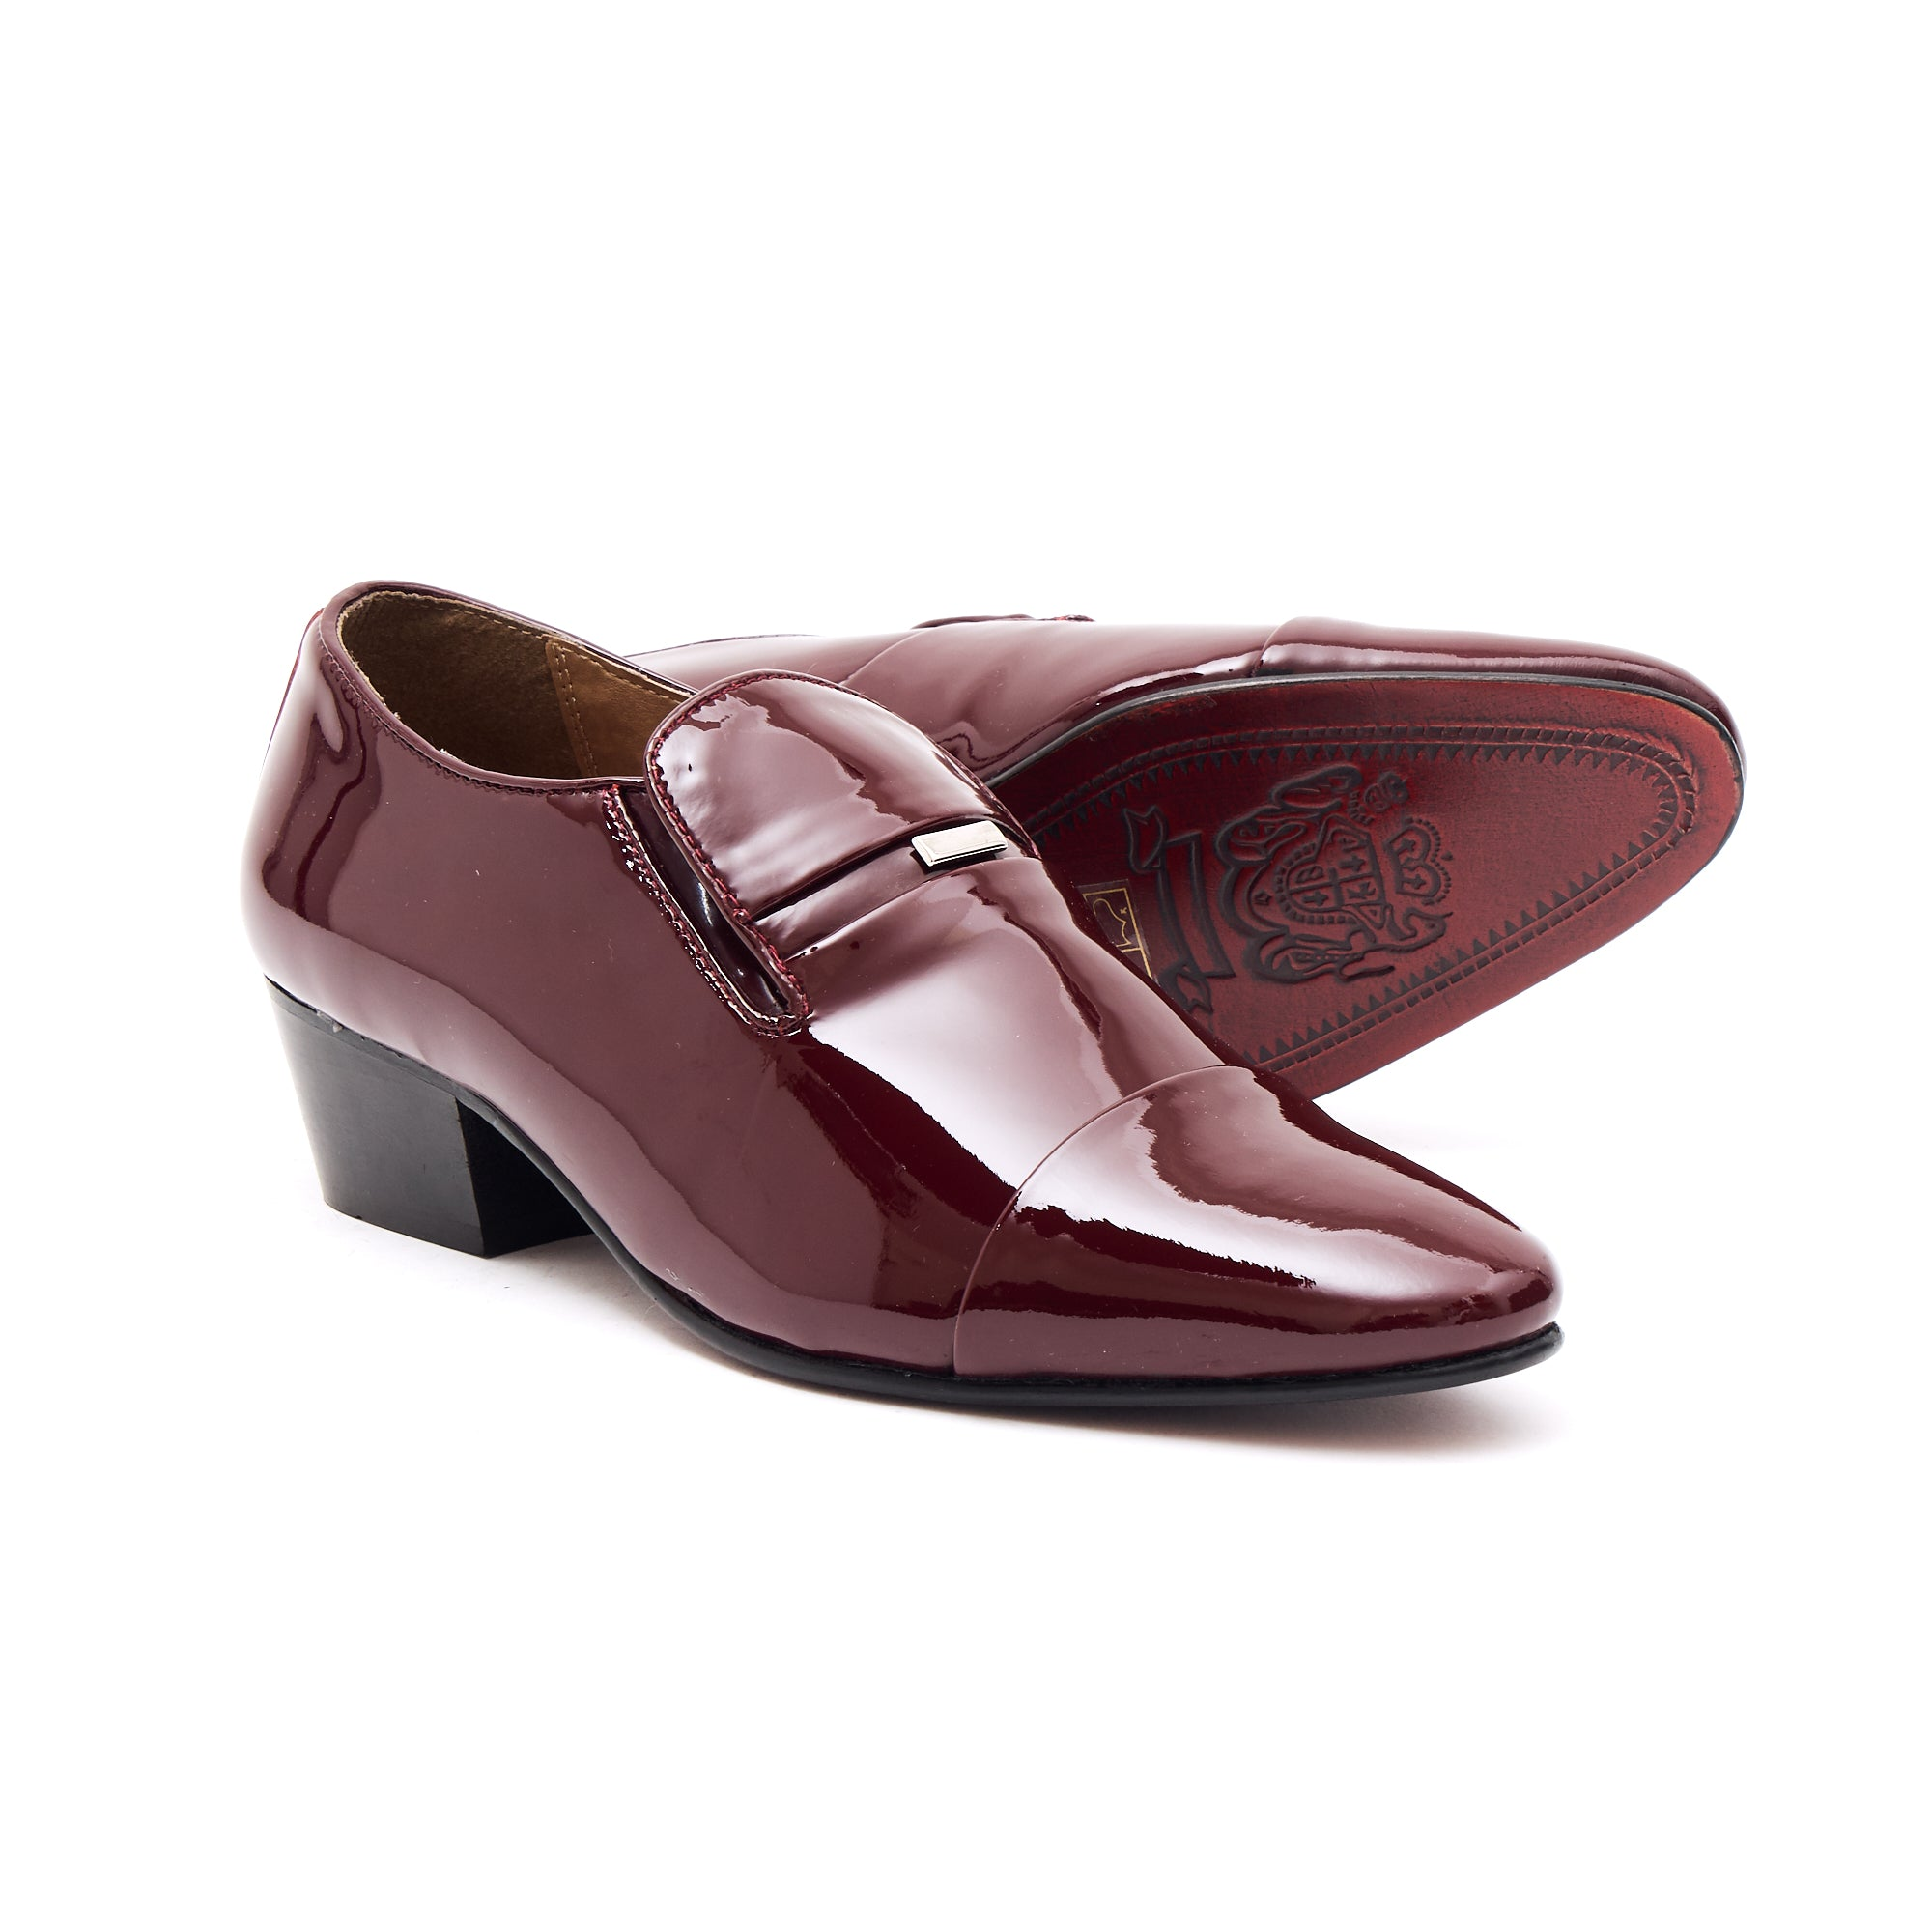 Mens Leather Cuban Heel Patent Shoes - 33478 Burgundy